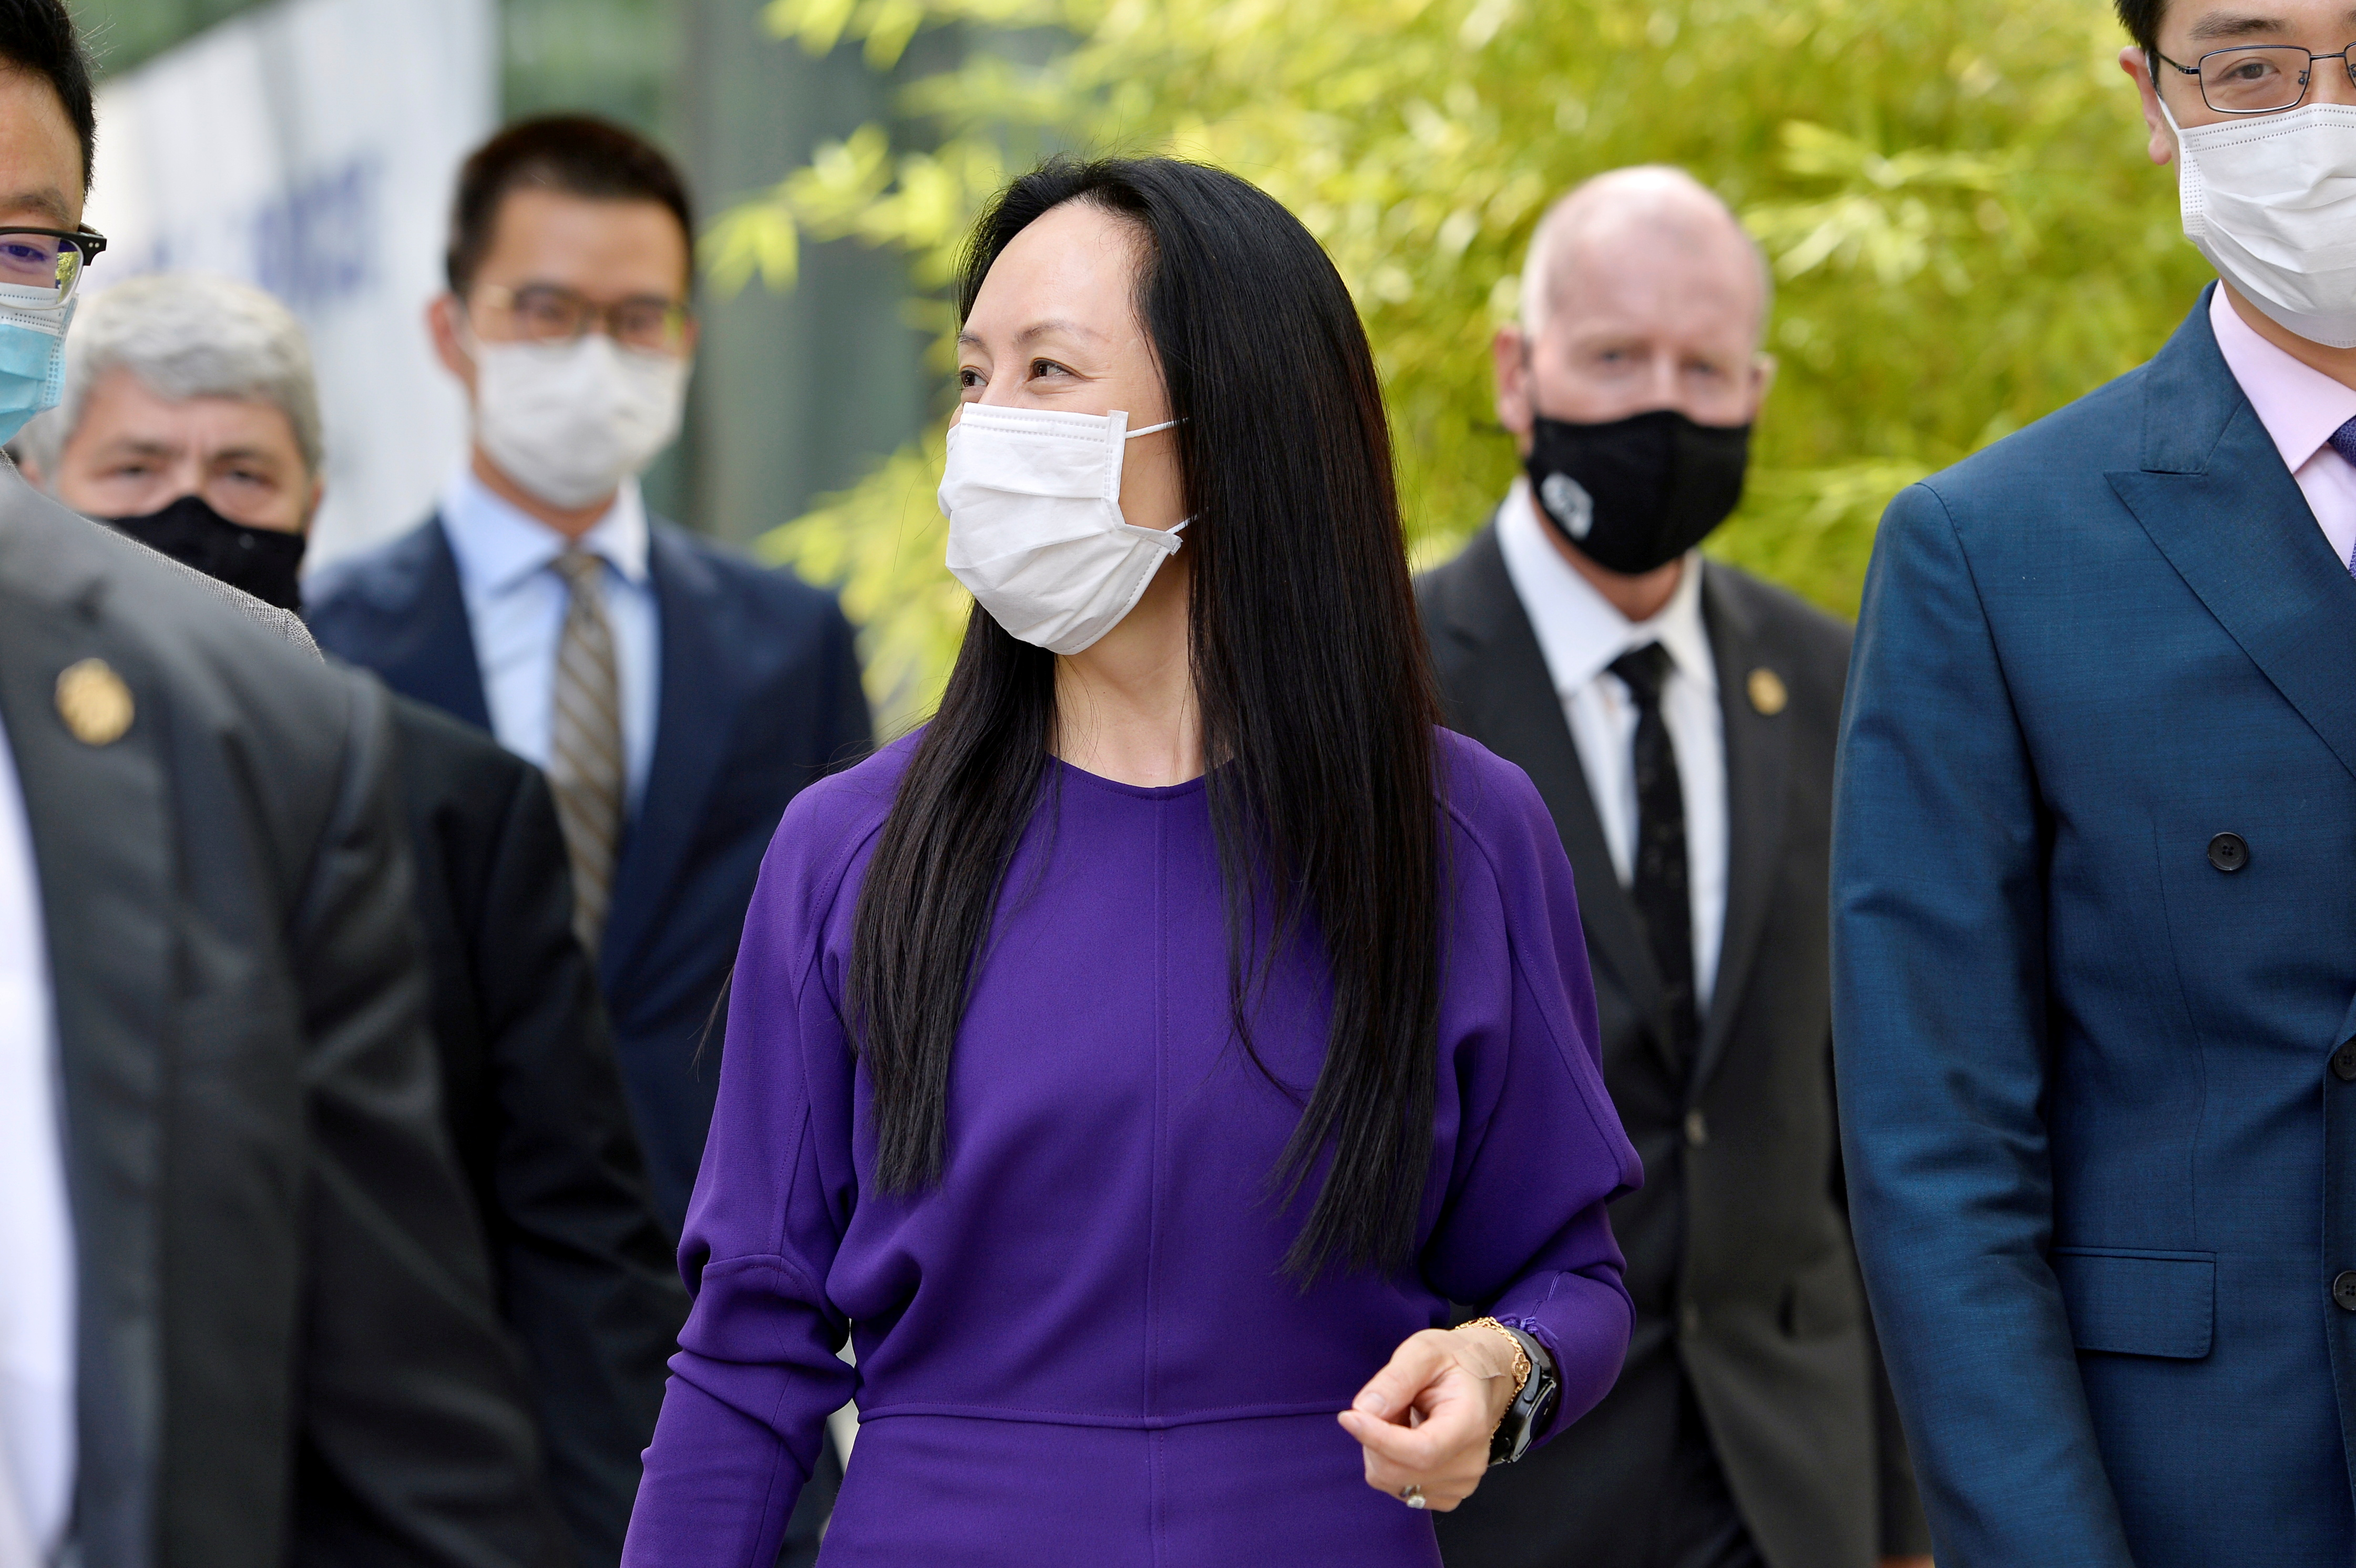 Huawei Technologies Chief Financial Officer Meng Wanzhou returns to a court hearing in Vancouver, Canada, August 18, 2021. REUTERS/Jennifer Gauthier/File Photo